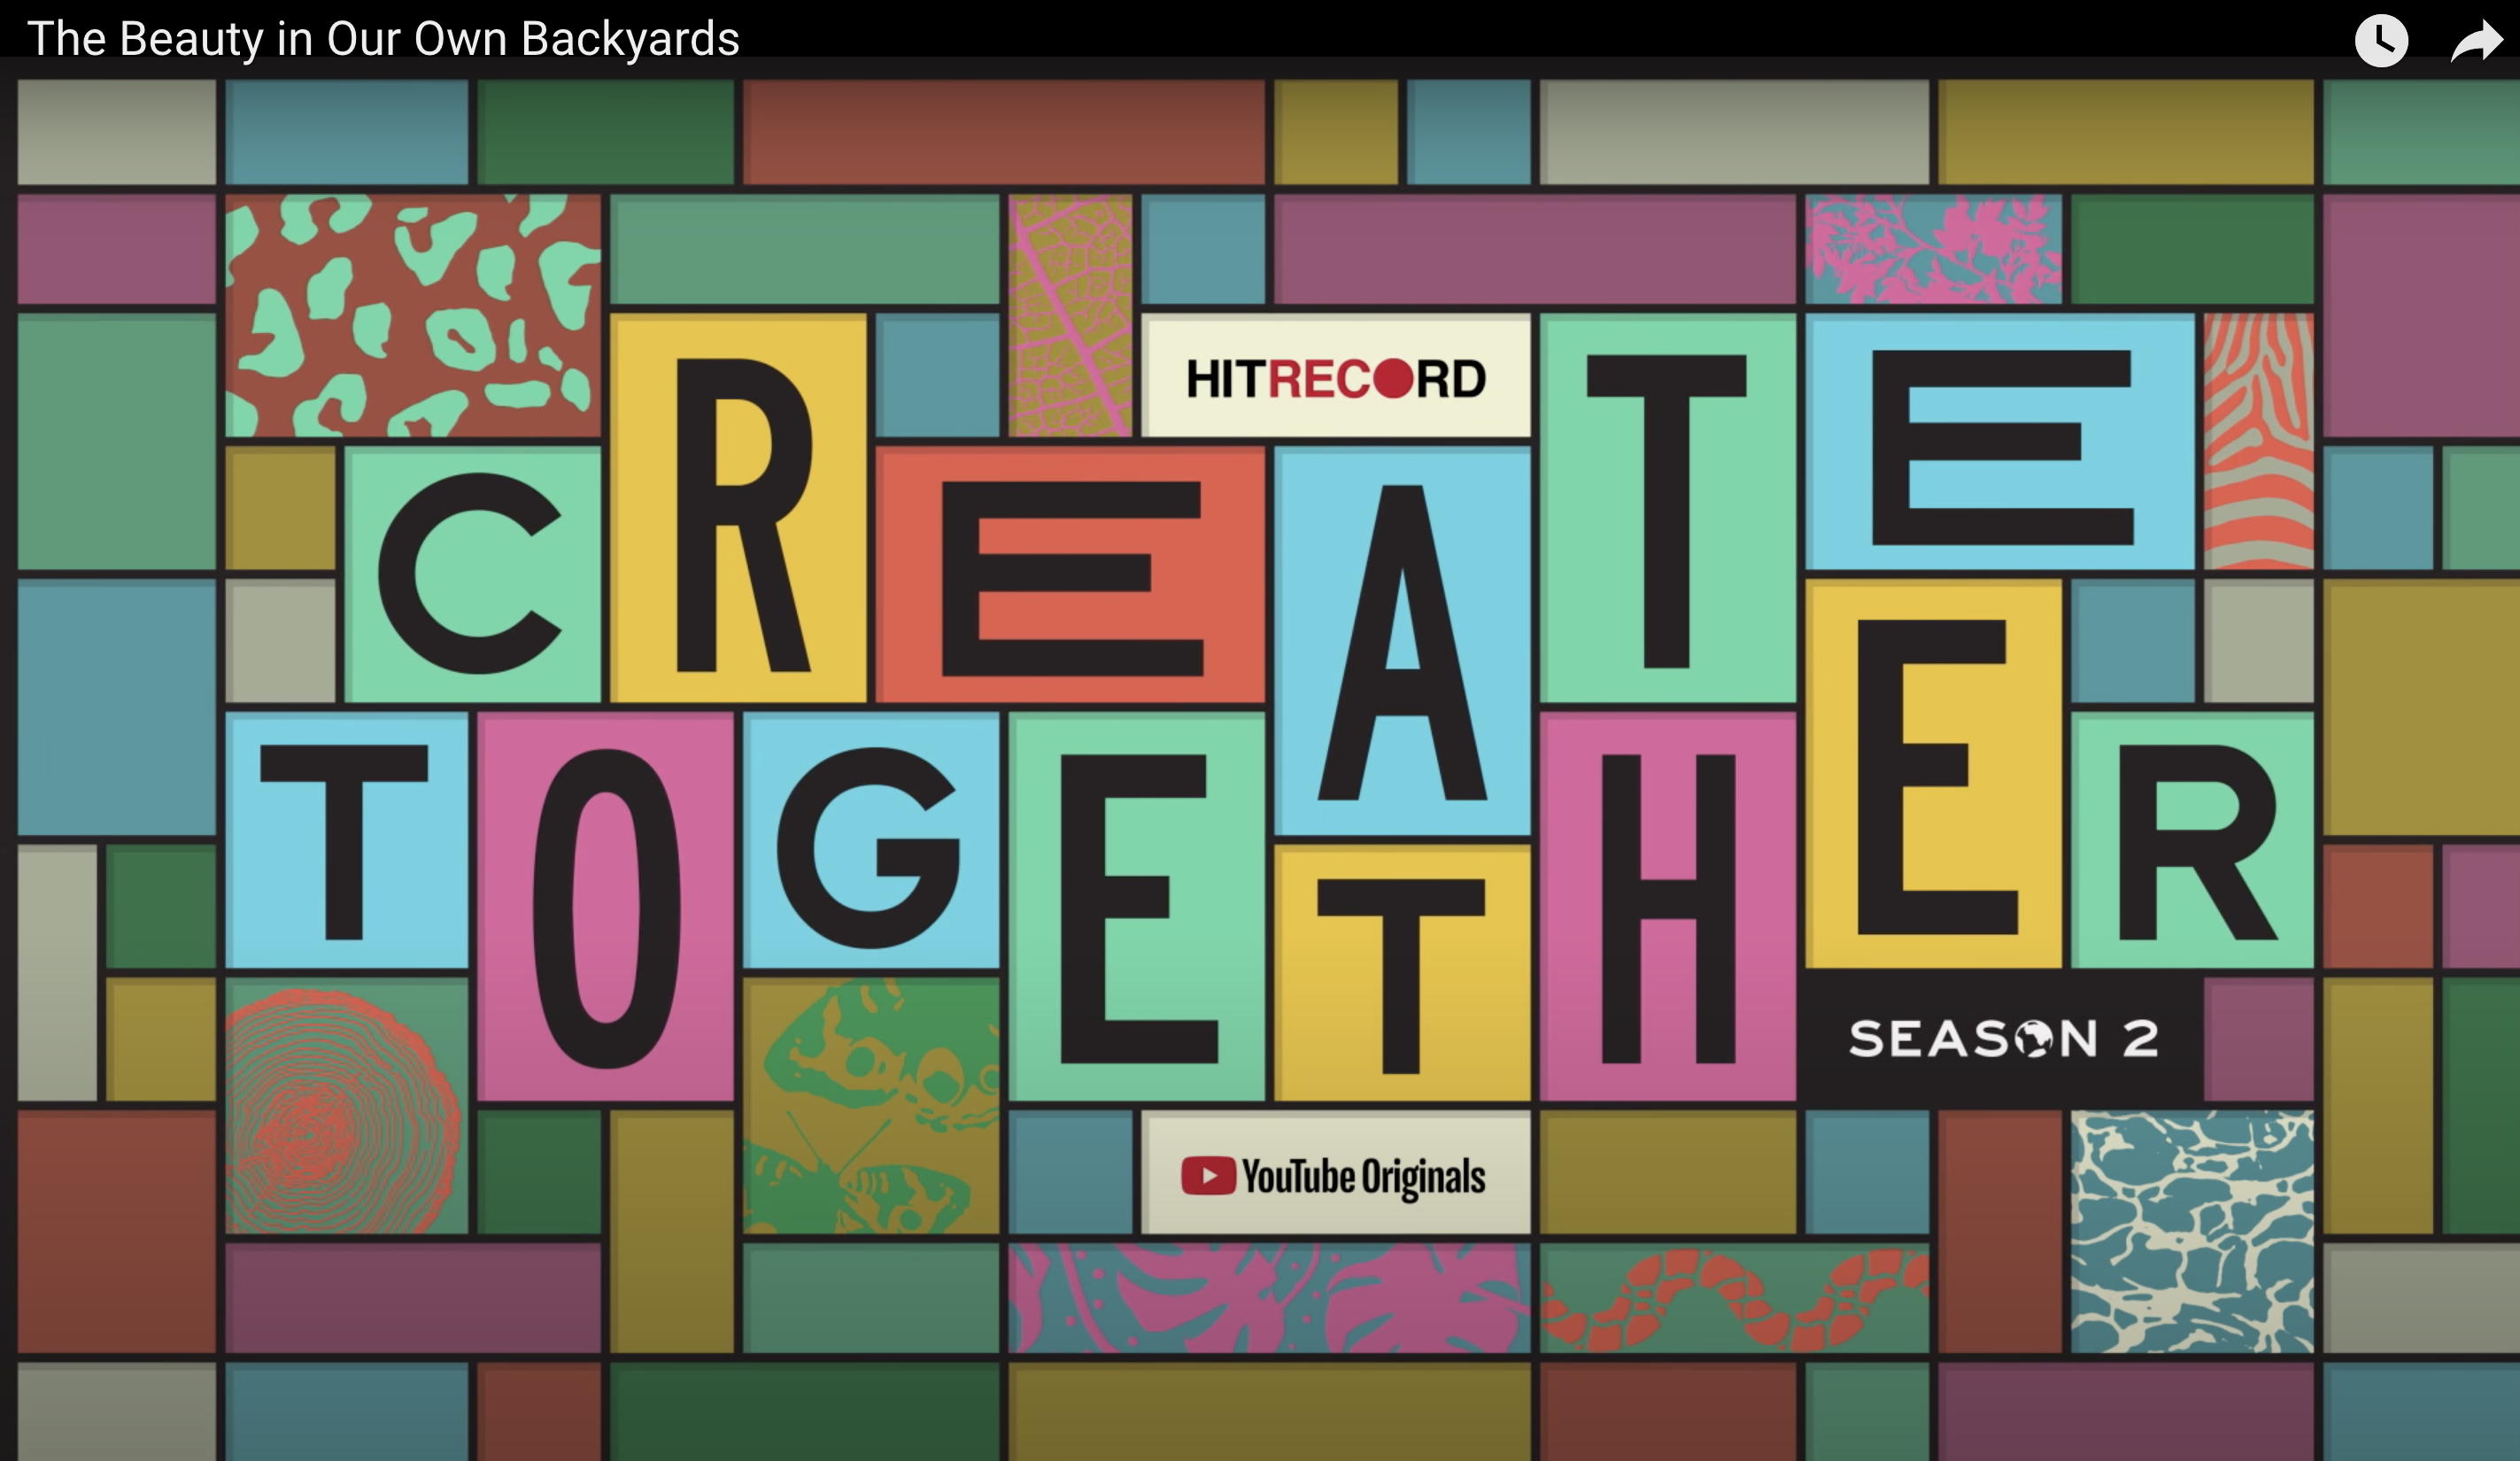 Video of Create Together Season 2, Episode 2